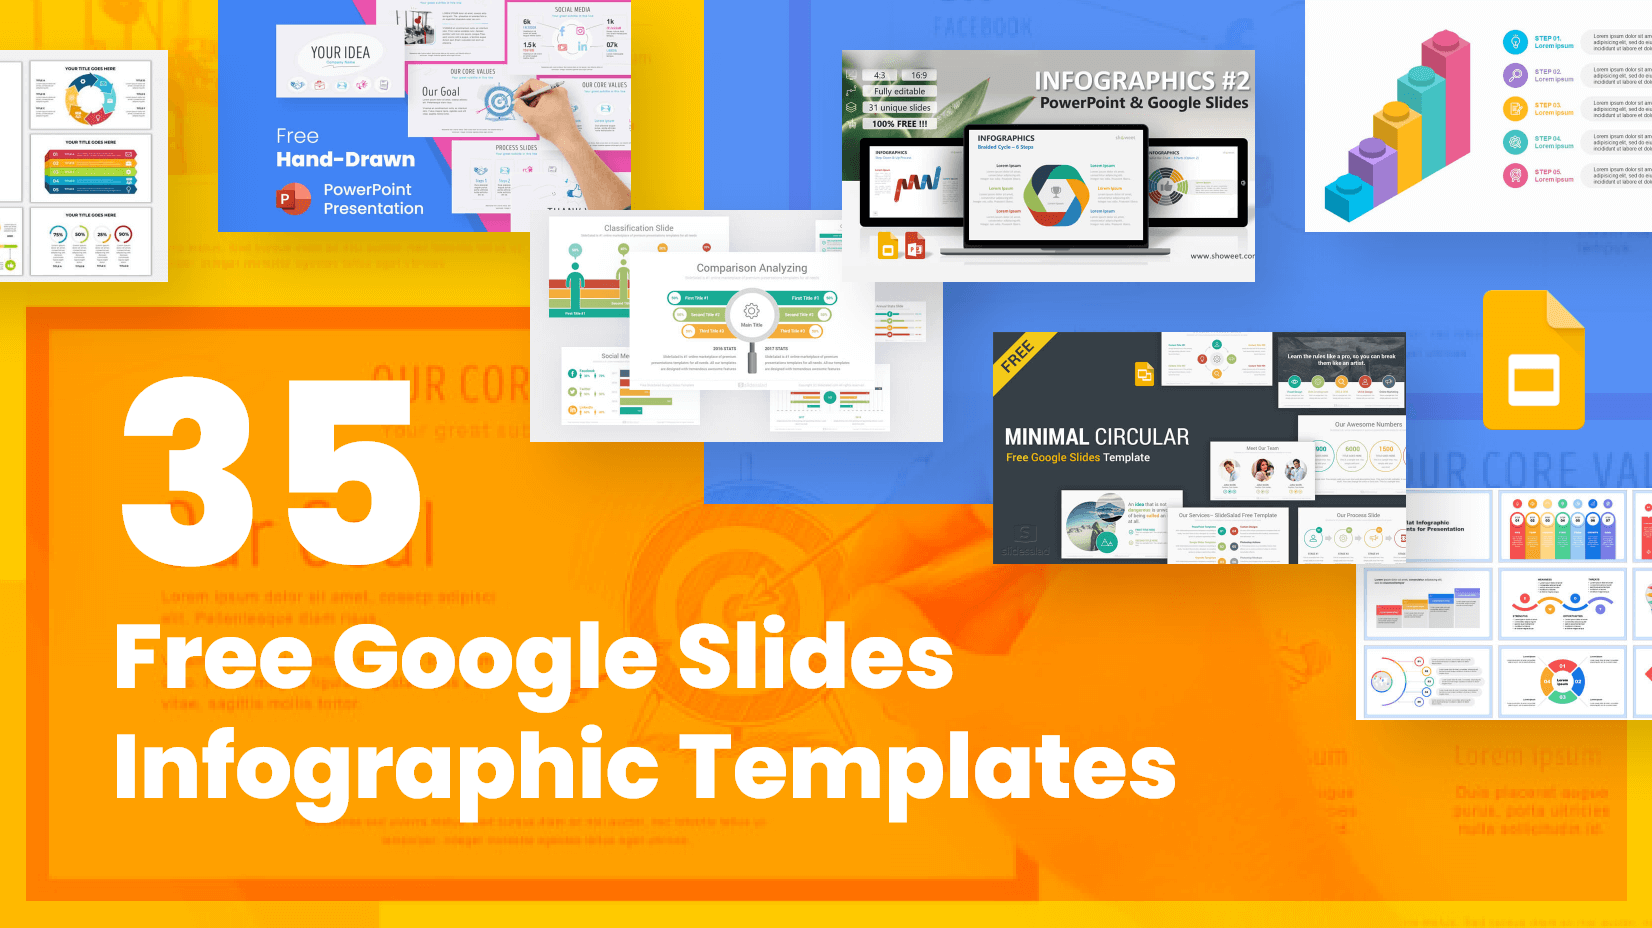 If you usually manage your data in excel, you can also import an existing.xls schedule into the web tool and turn it into a timeline. 35 Free Google Slides Infographic Templates To Grab Now Graphicmama Blog